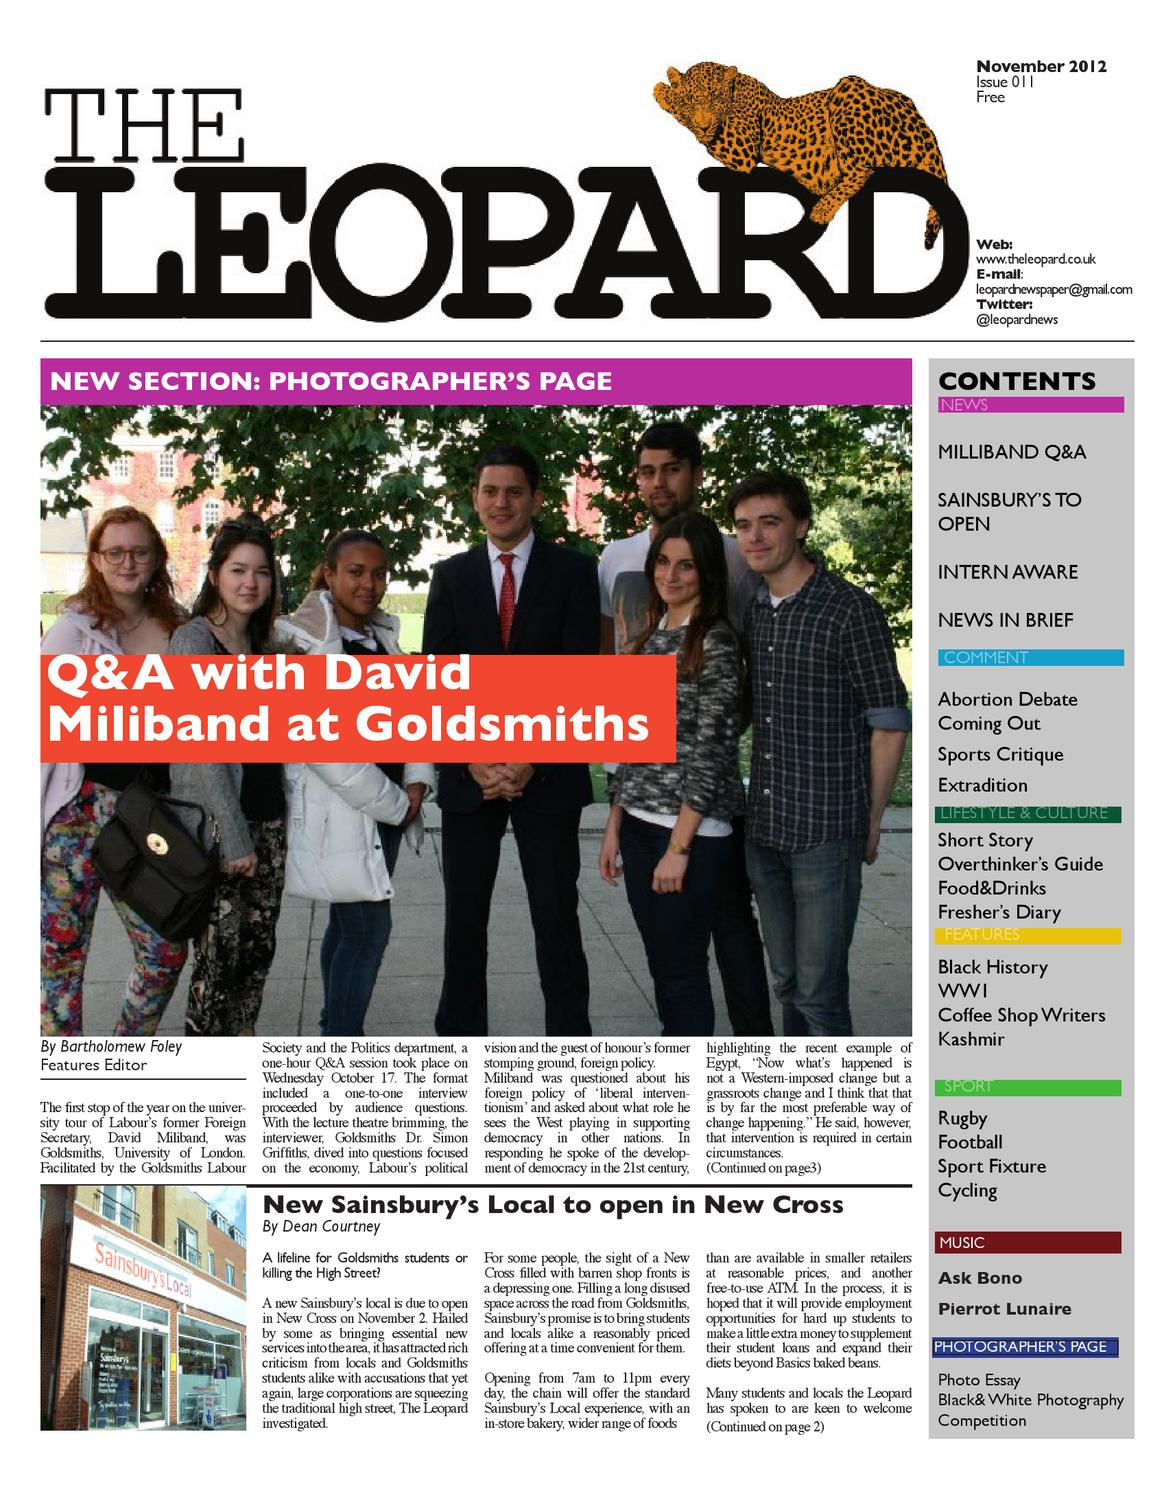 The Leopard (November 2012) by The Leopard - issuu